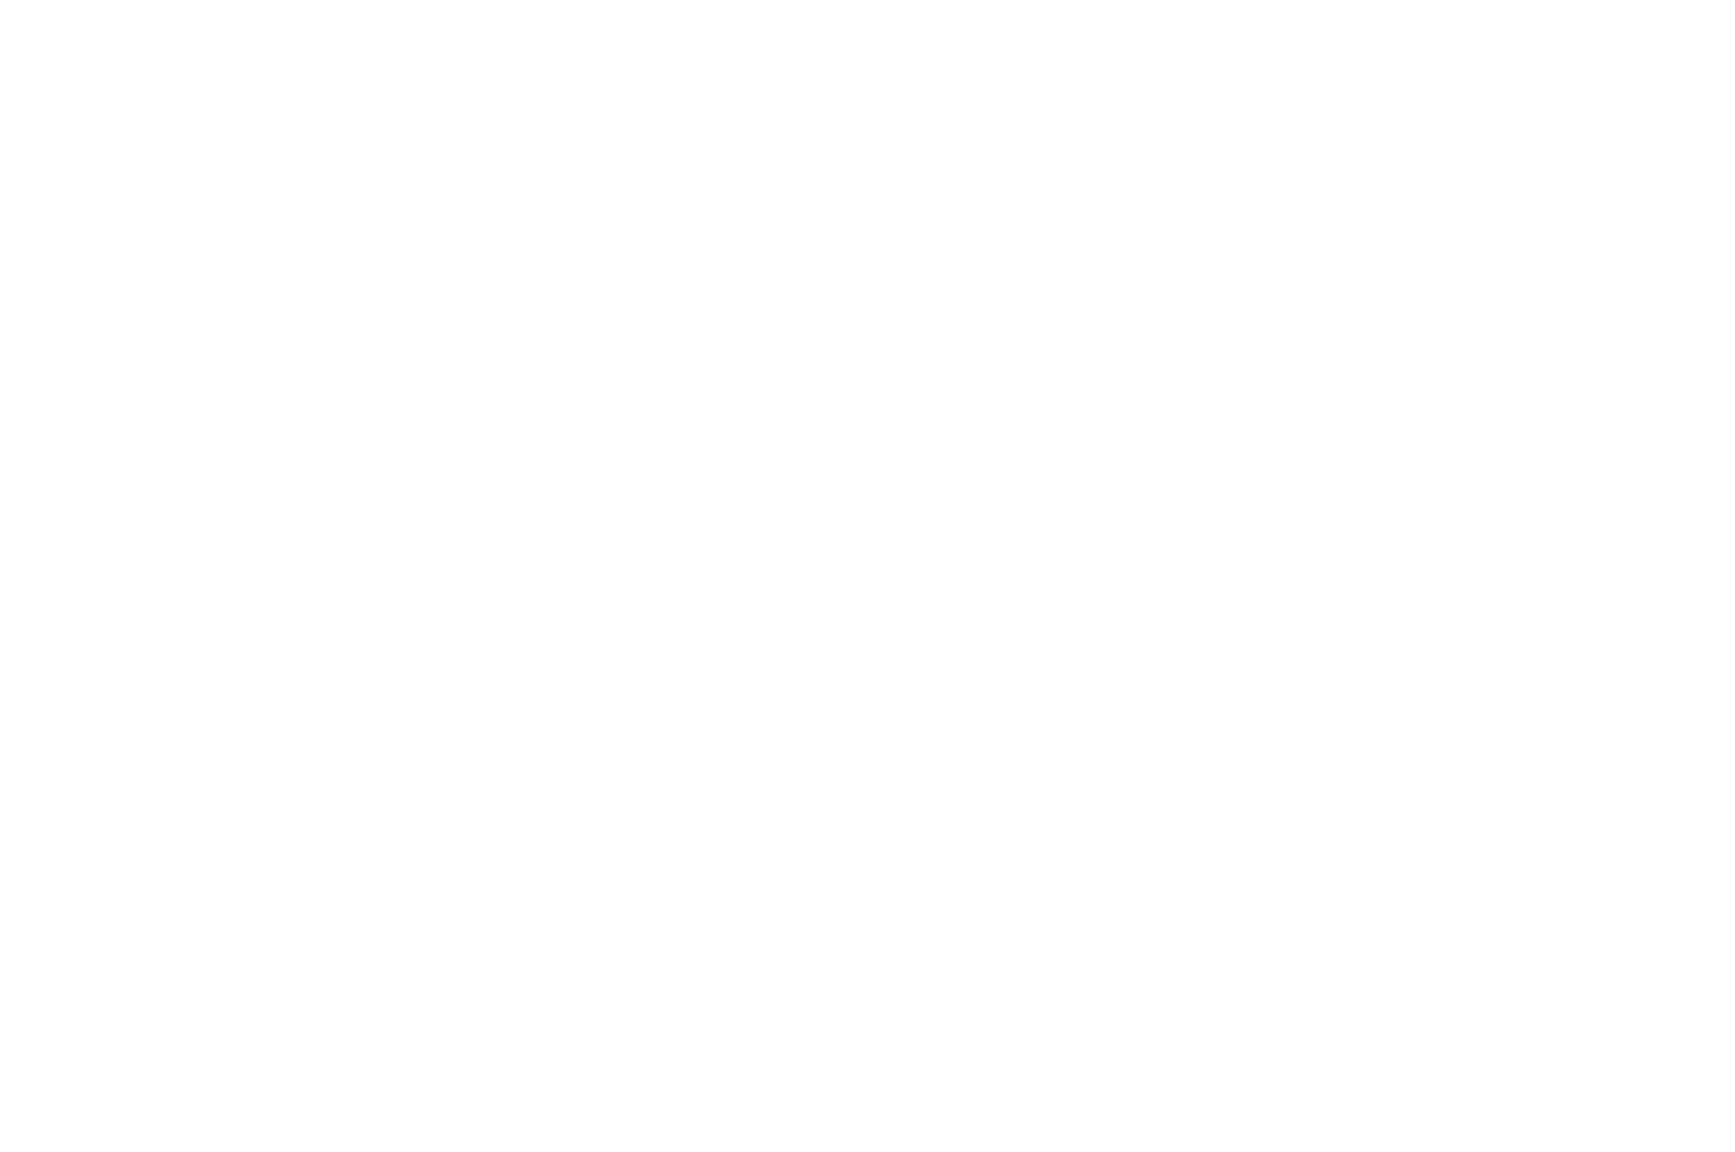 BEST WESTERN - Genre Celebration Festival - 2018.png